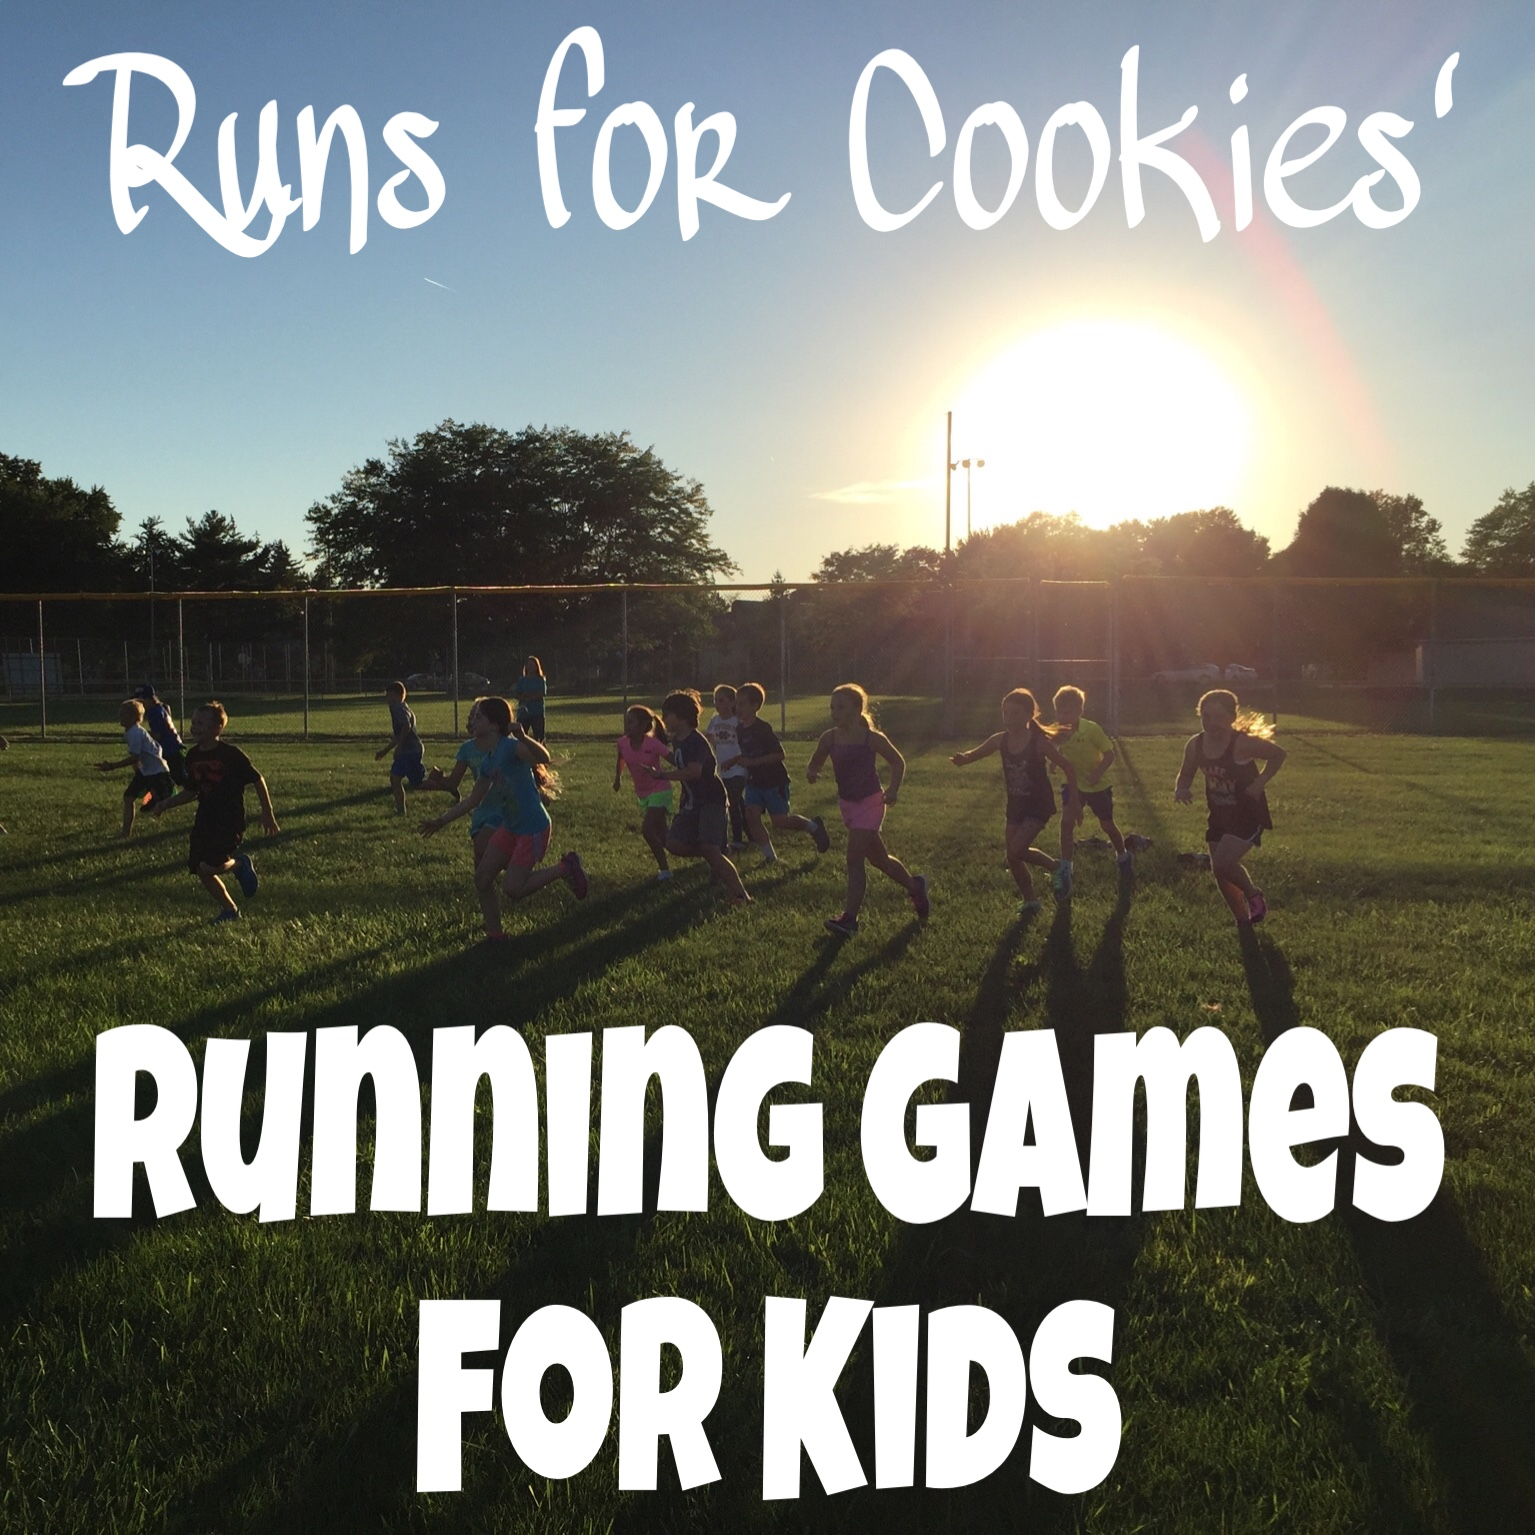 Running Games for Kids